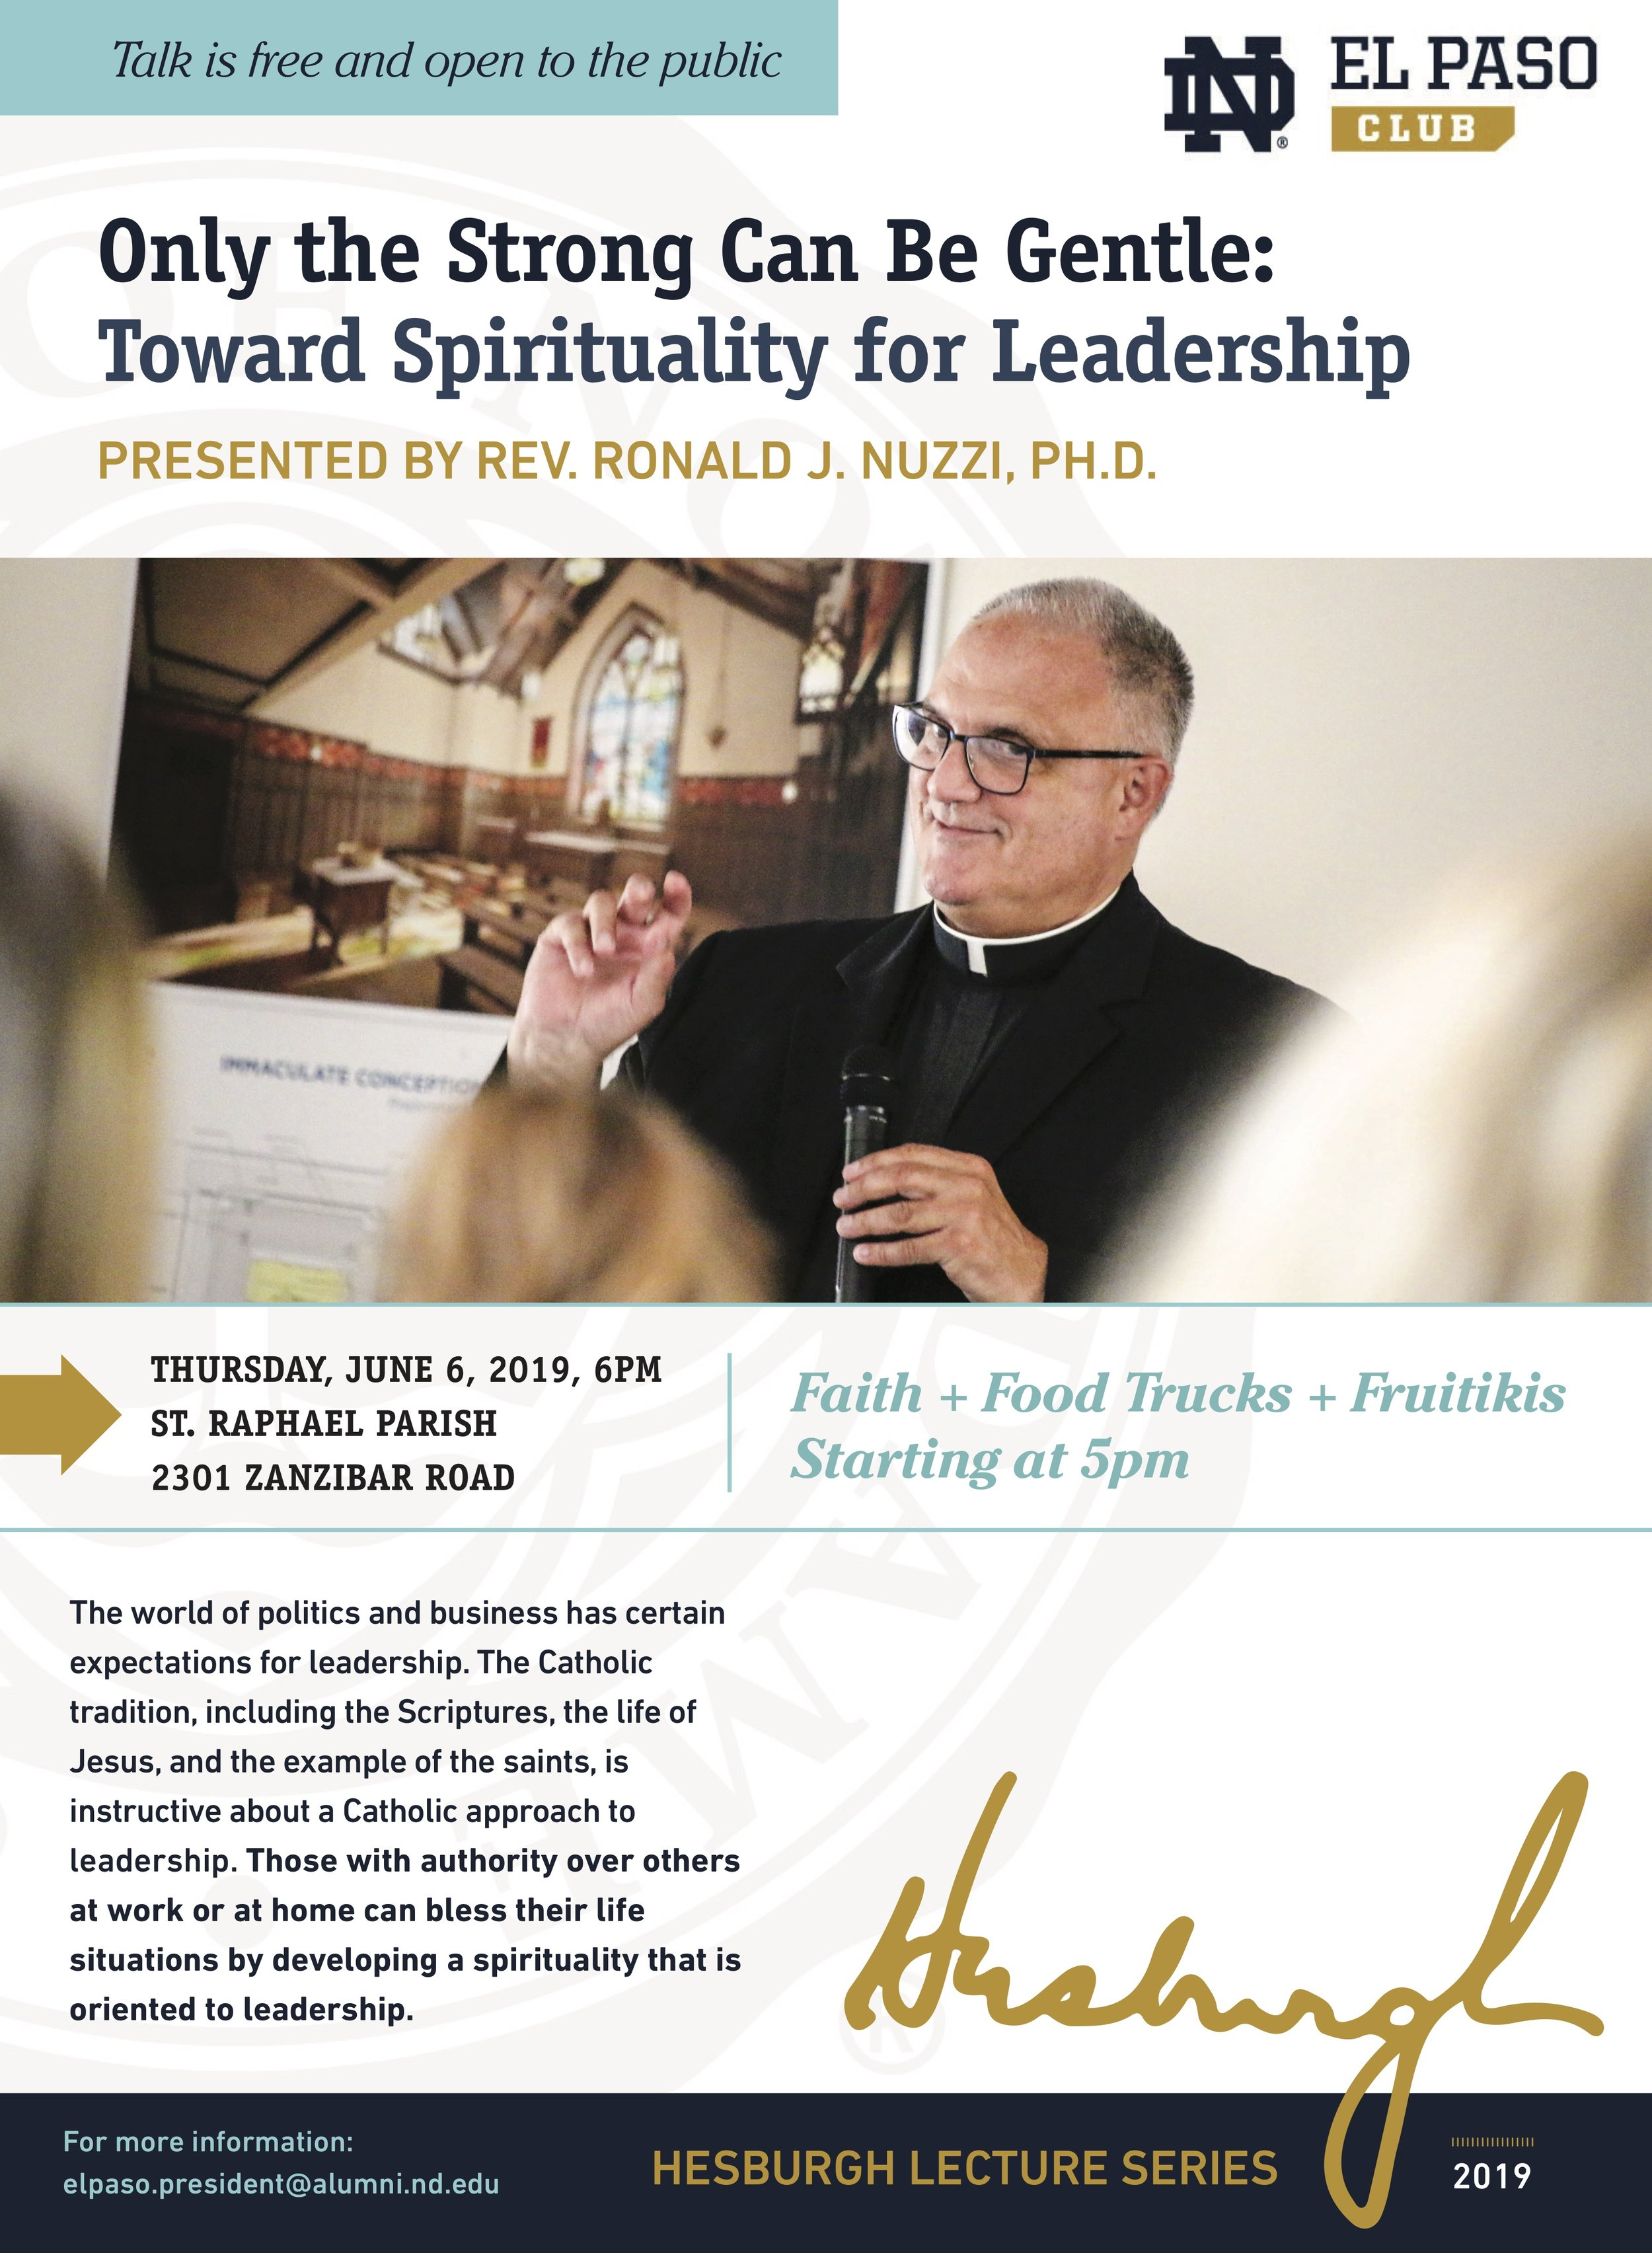 Hesburgh Lecture Poster.jpg